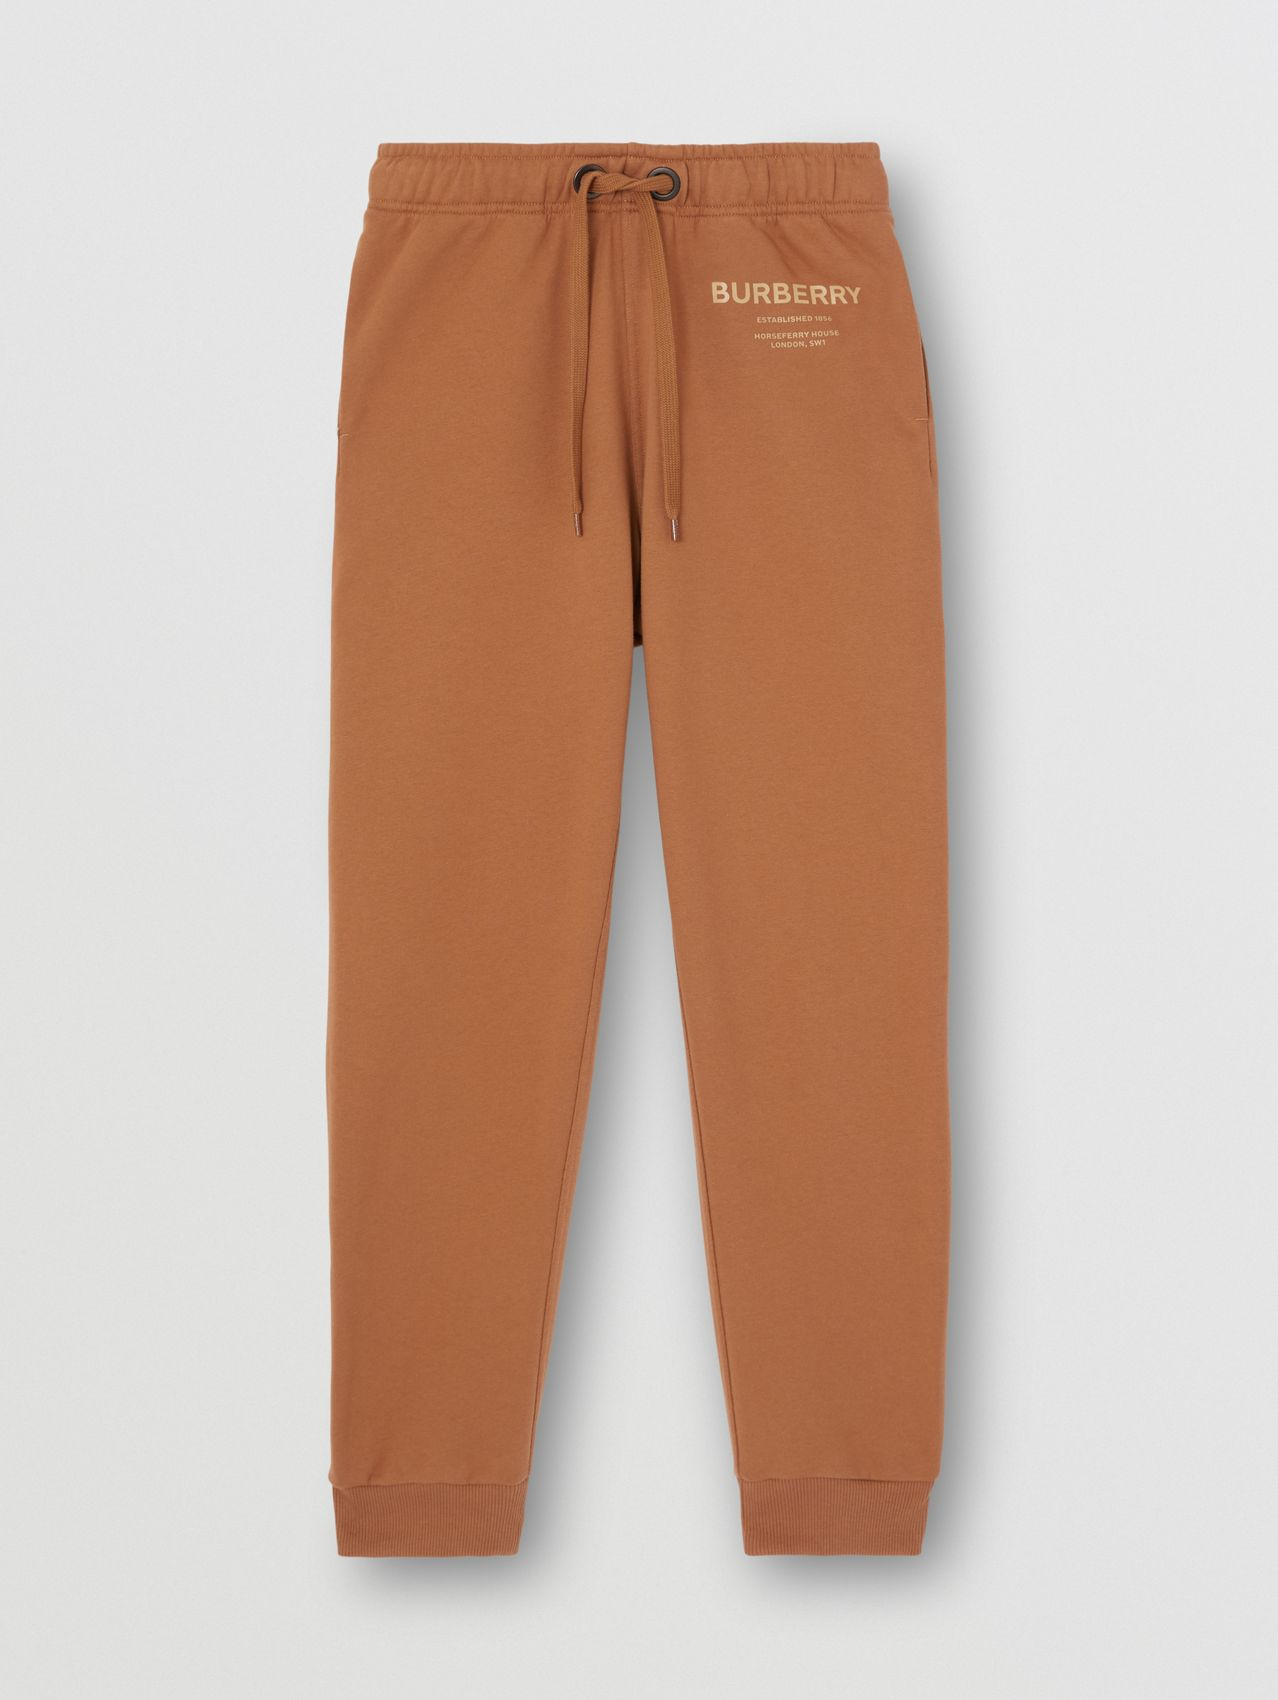 Horseferry Print Cotton Jogging Pants in Camel